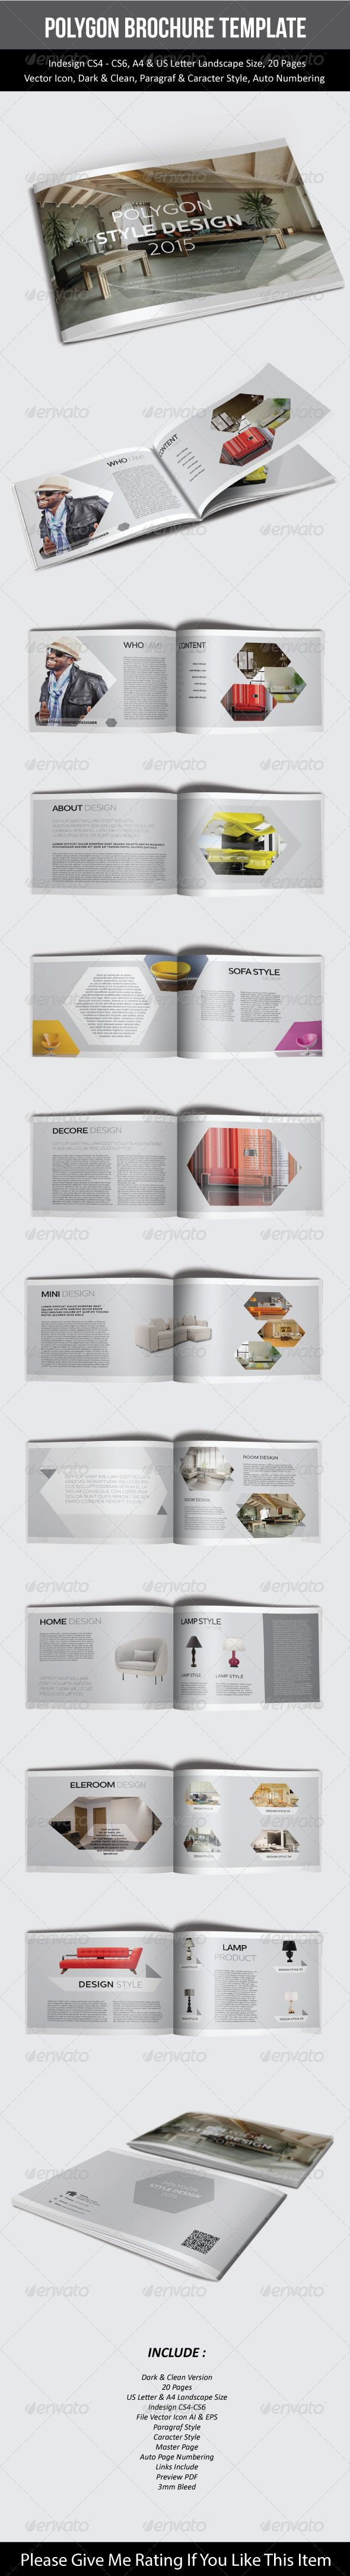 Polygon Brochure Template u2014 InDesign INDD catalogs